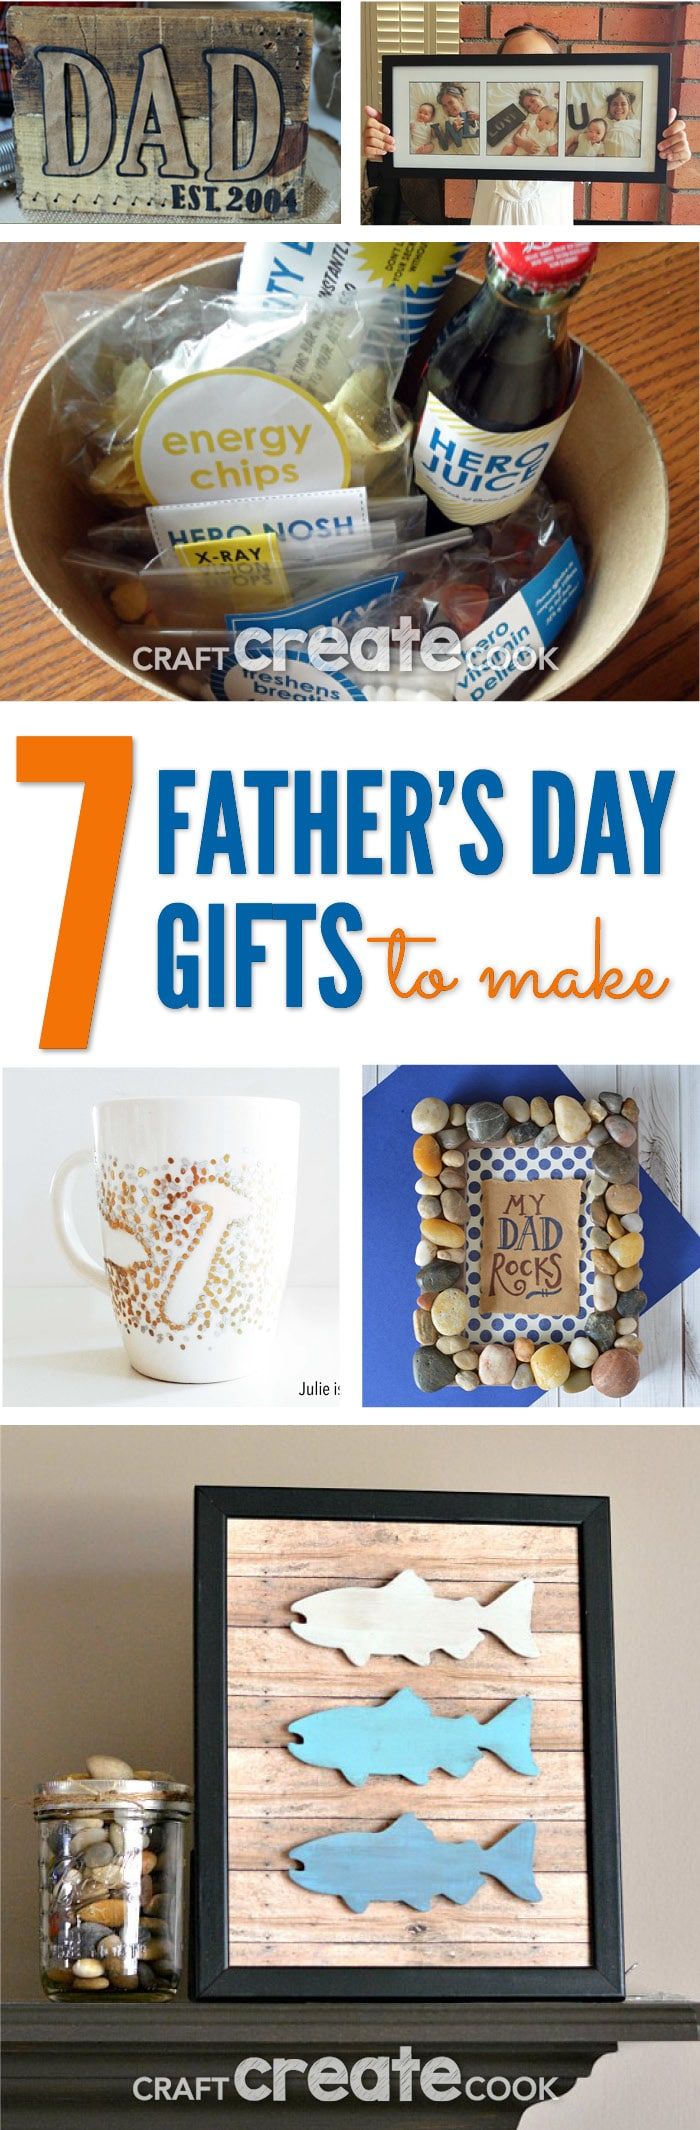 7 Amazing DIY Father's Day Gifts you'll want to make and display!